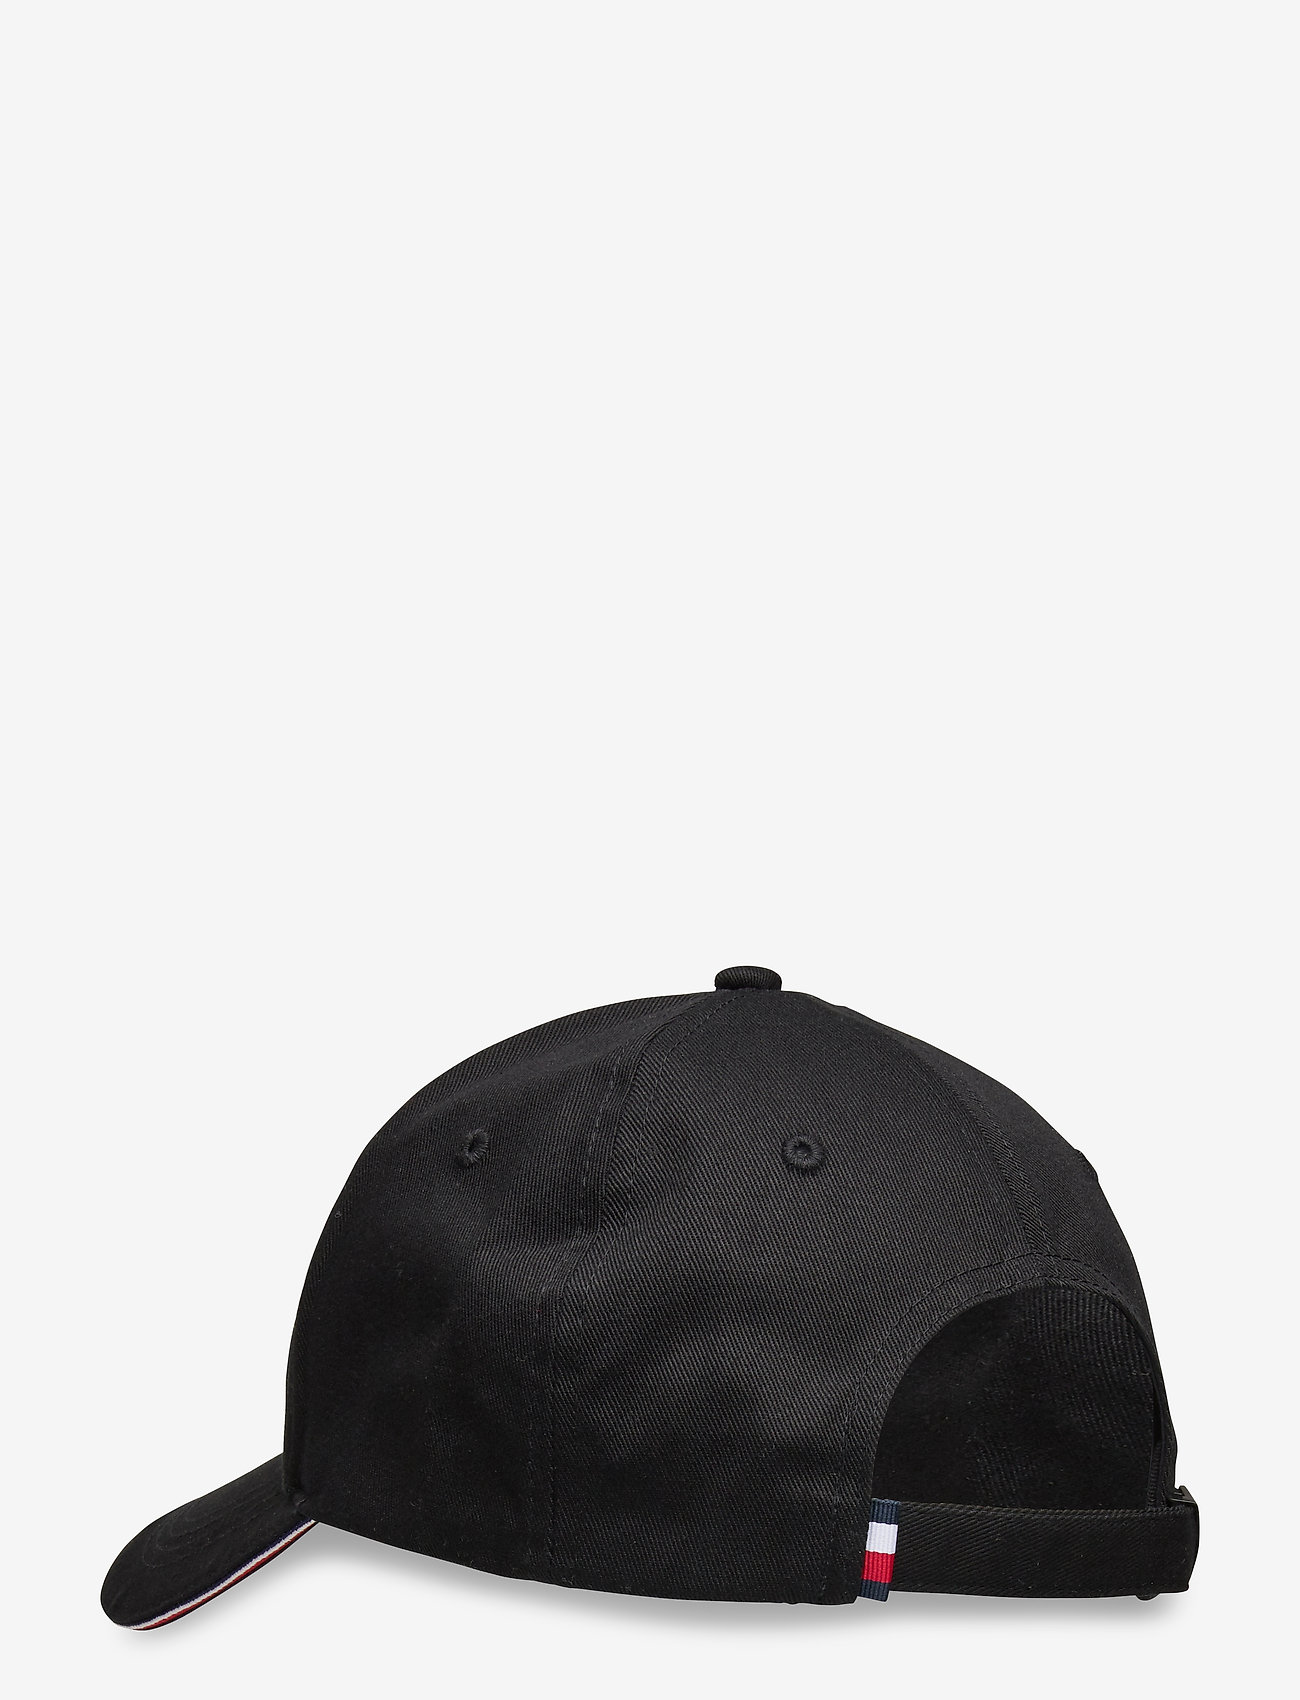 Tommy Hilfiger - ELEVATED CORPORATE CAP - casquettes - black - 1